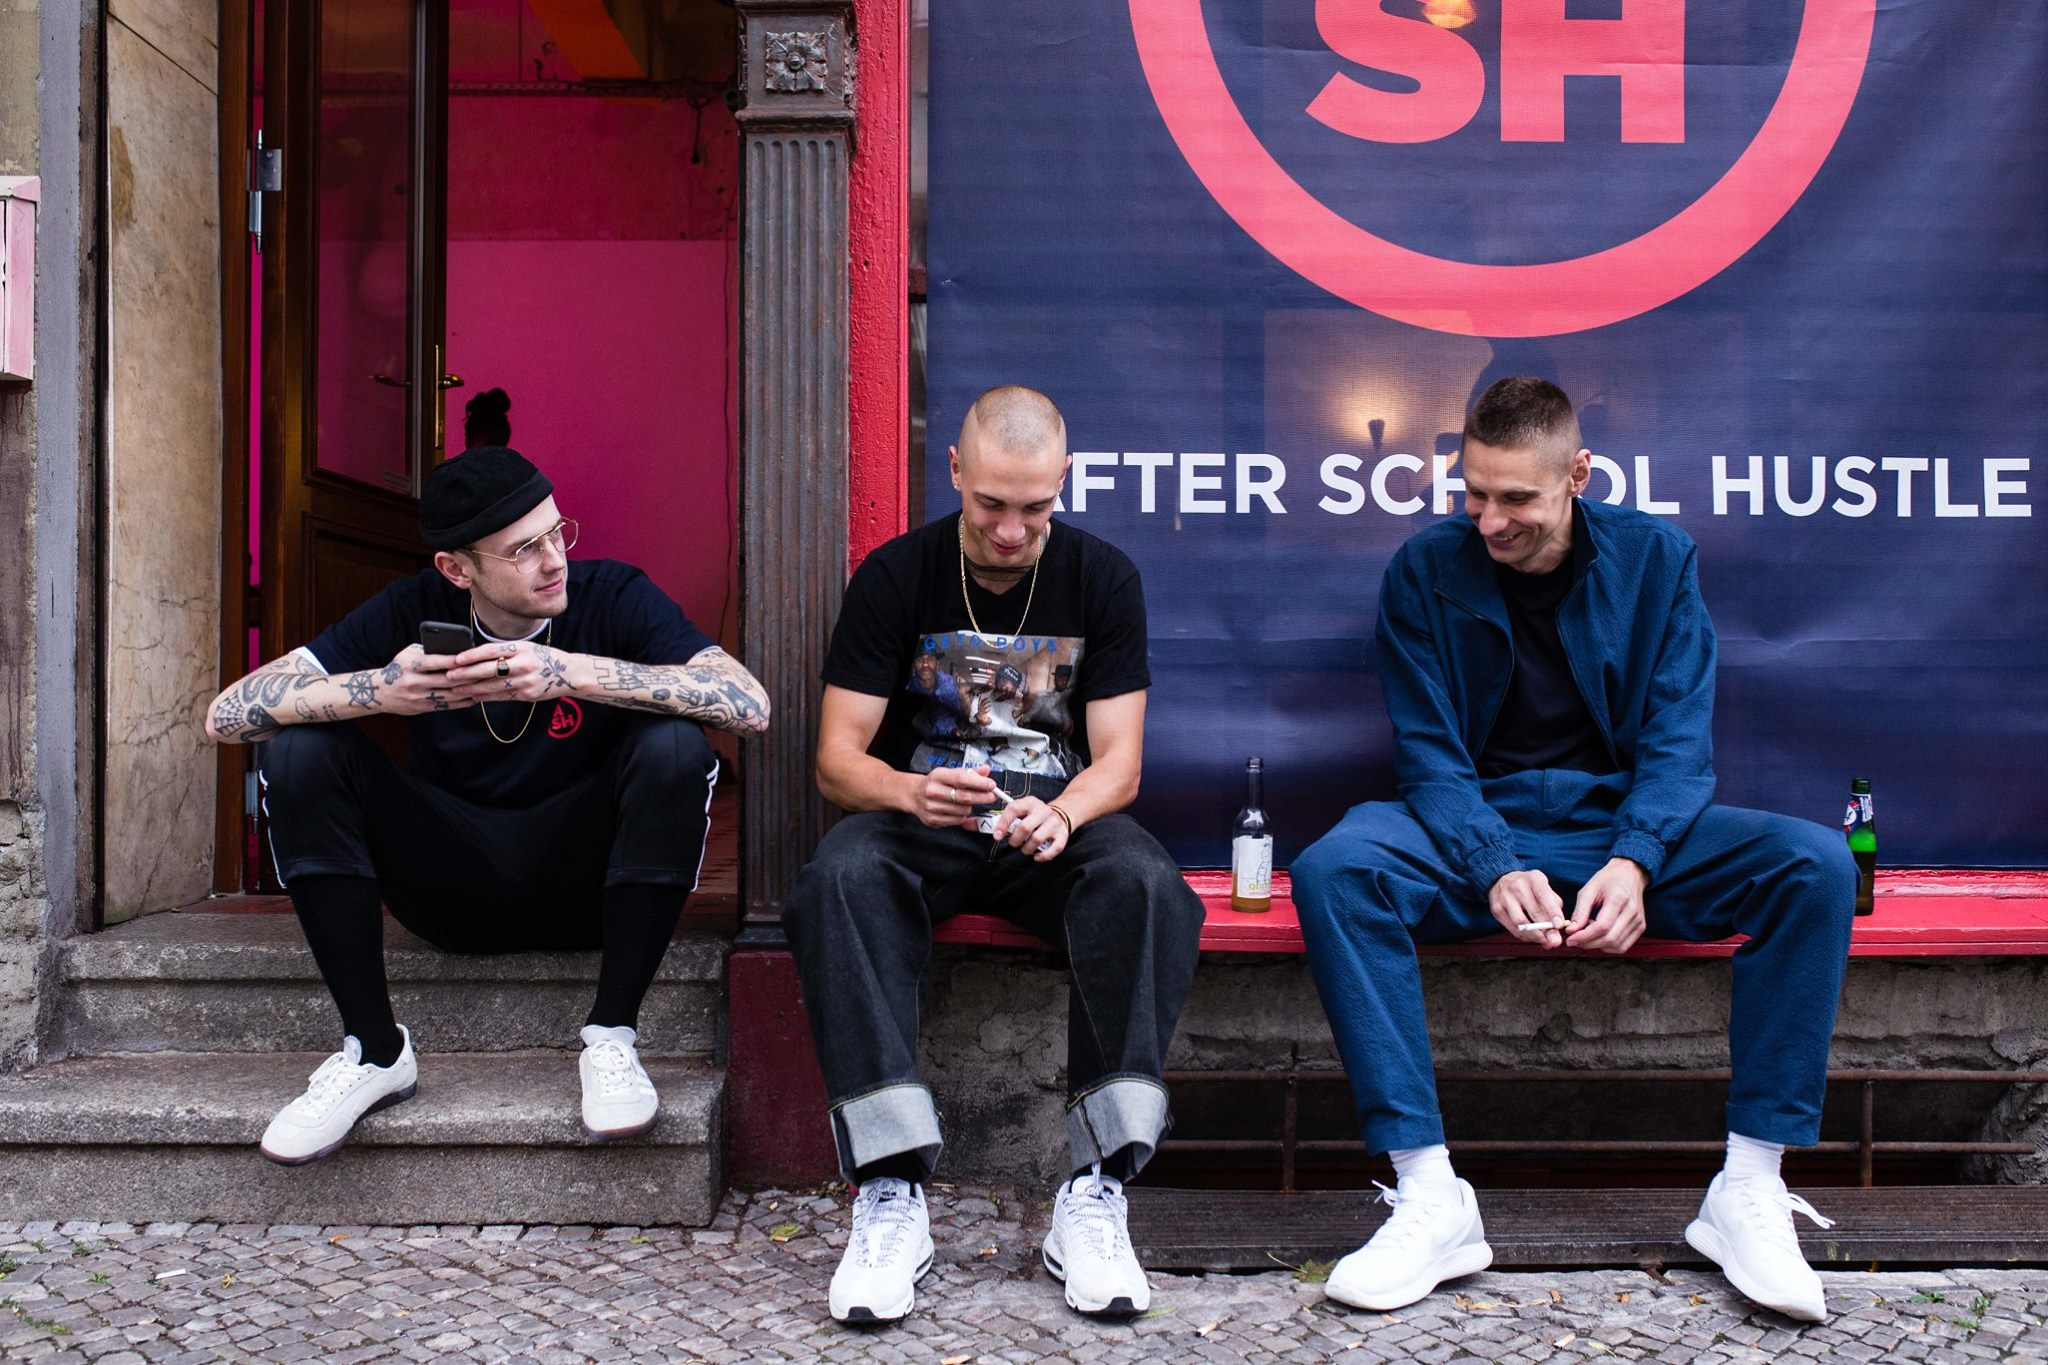 After School Hustle: The Coolest Coaches of Berlin